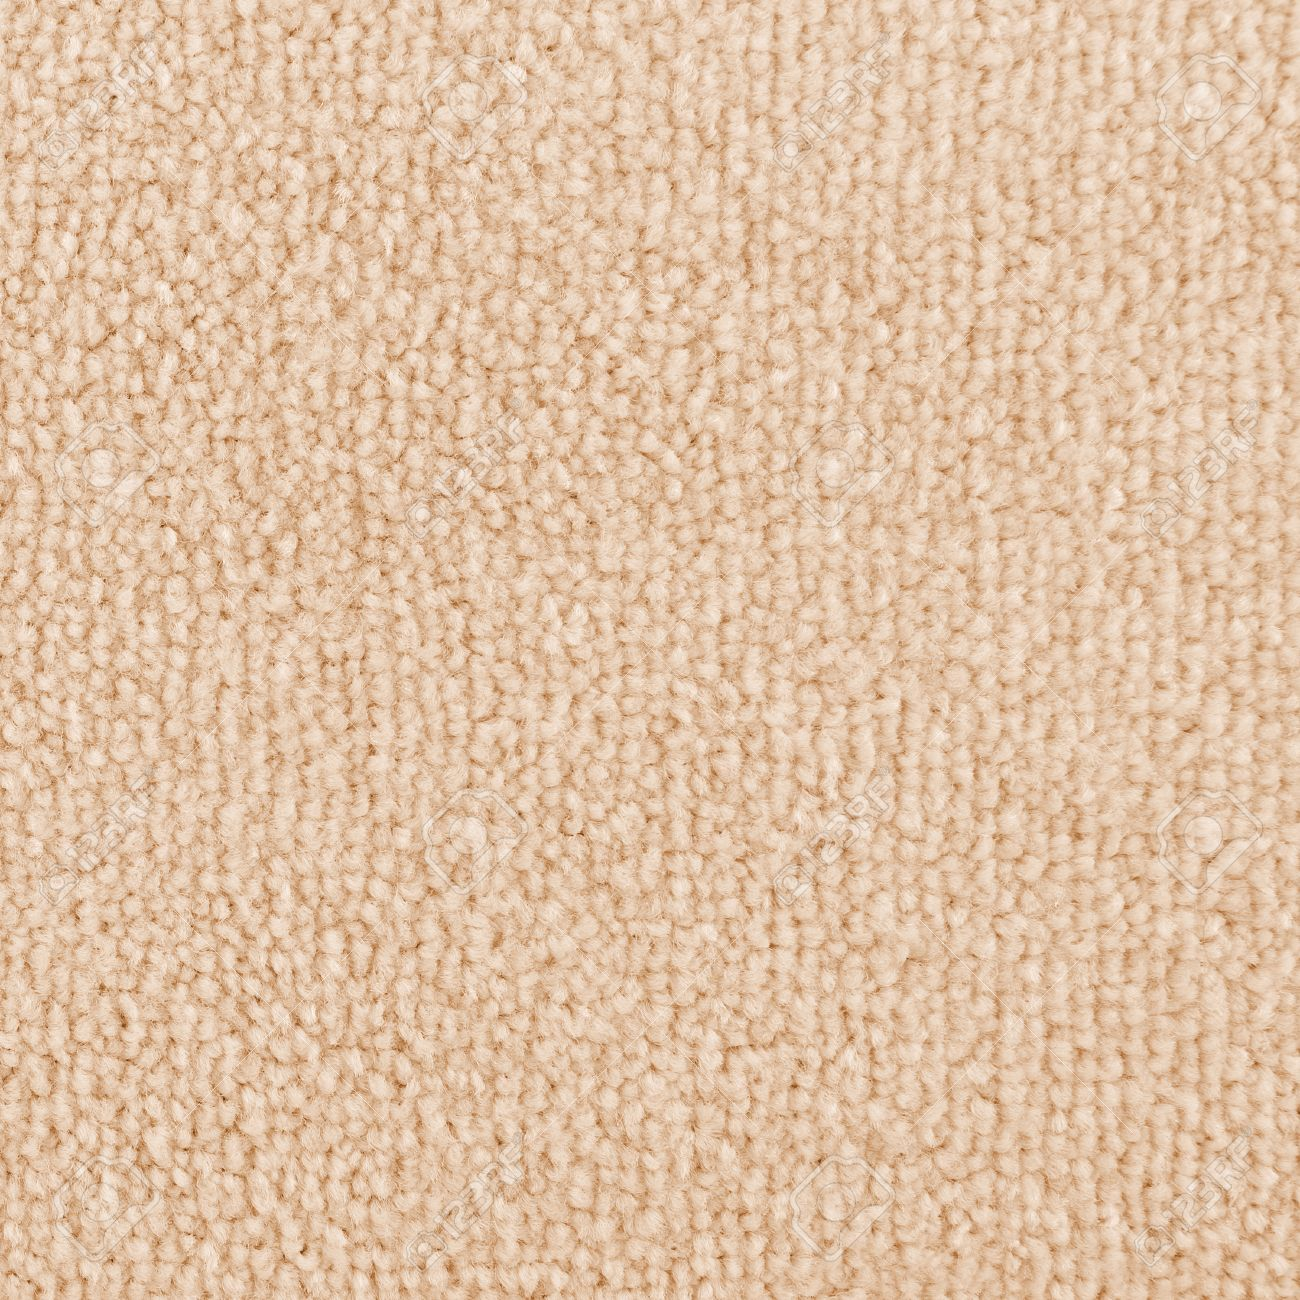 beige carpet texture. new carpet texture. bright beige flooring as seamless background. stock photo - 31627557 texture